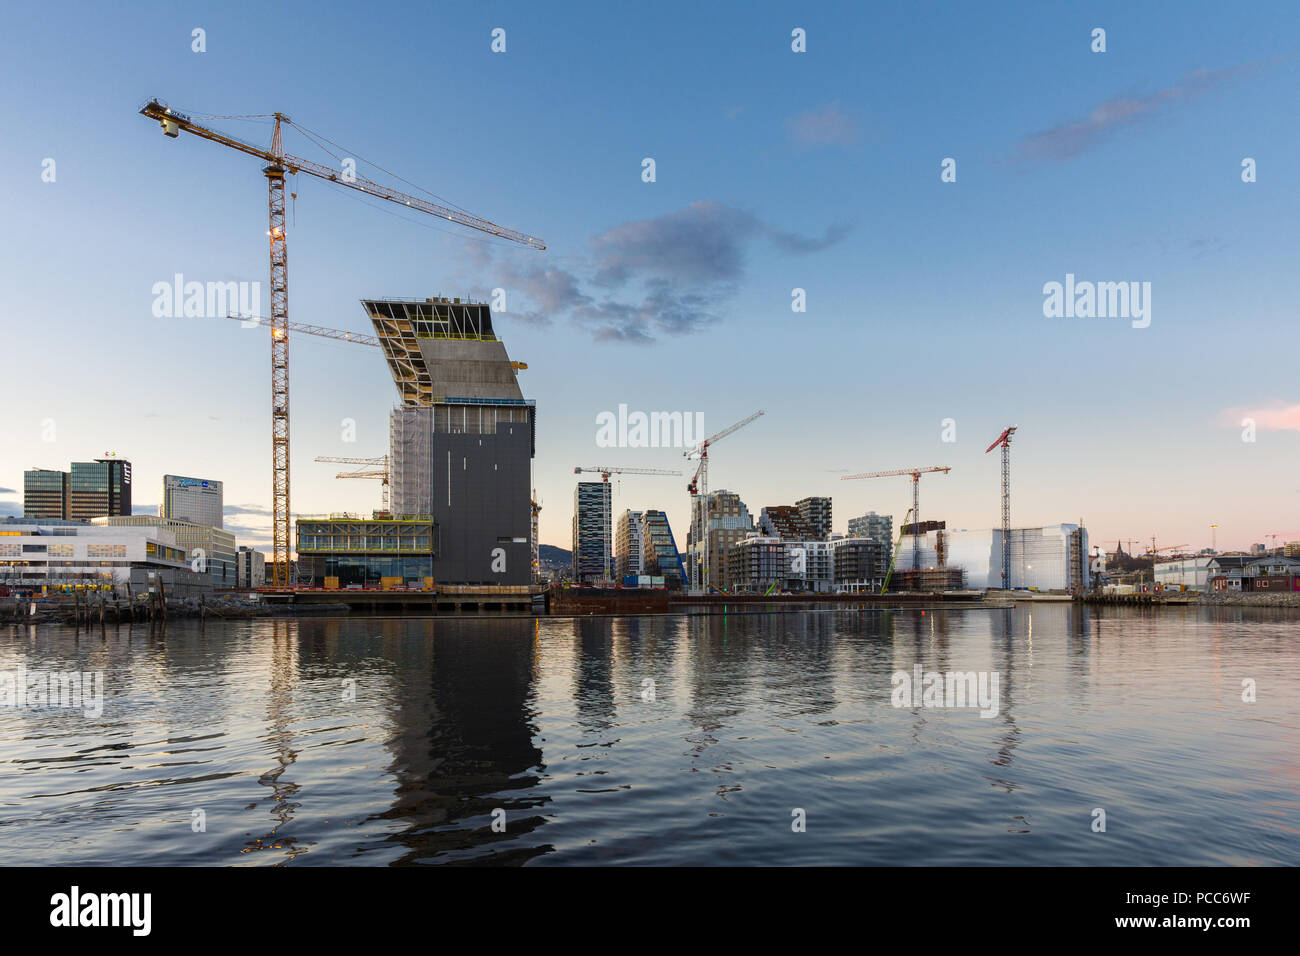 Oslo, Norway -April 27, 2018: Modern buildings known as Barcode Project under construction in the center of Oslo at the sunset - Stock Image